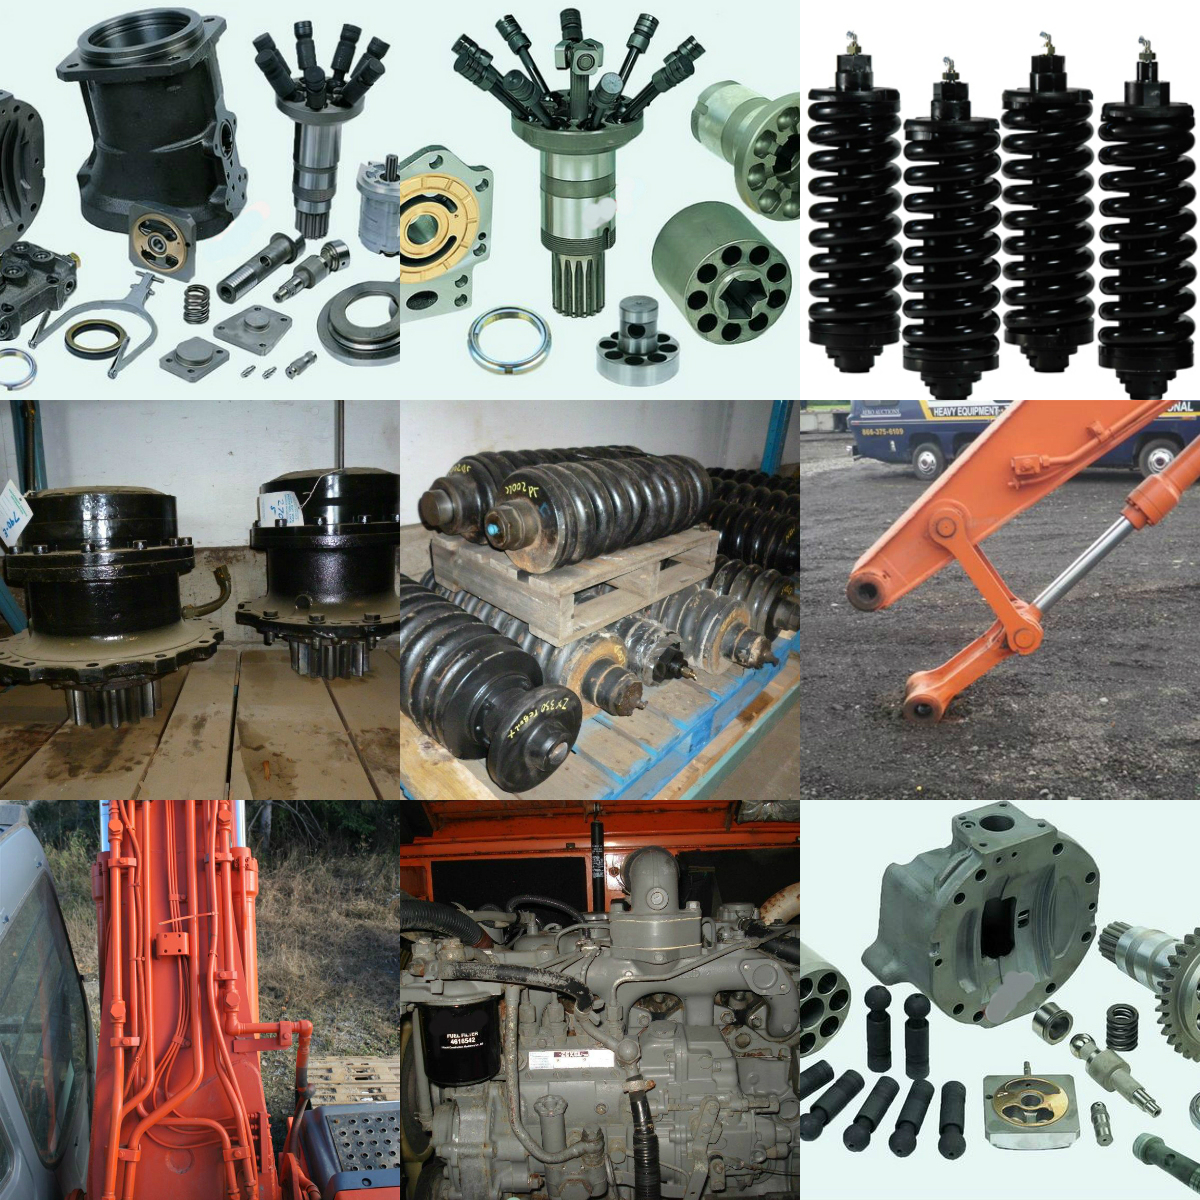 Hitachi equipment range